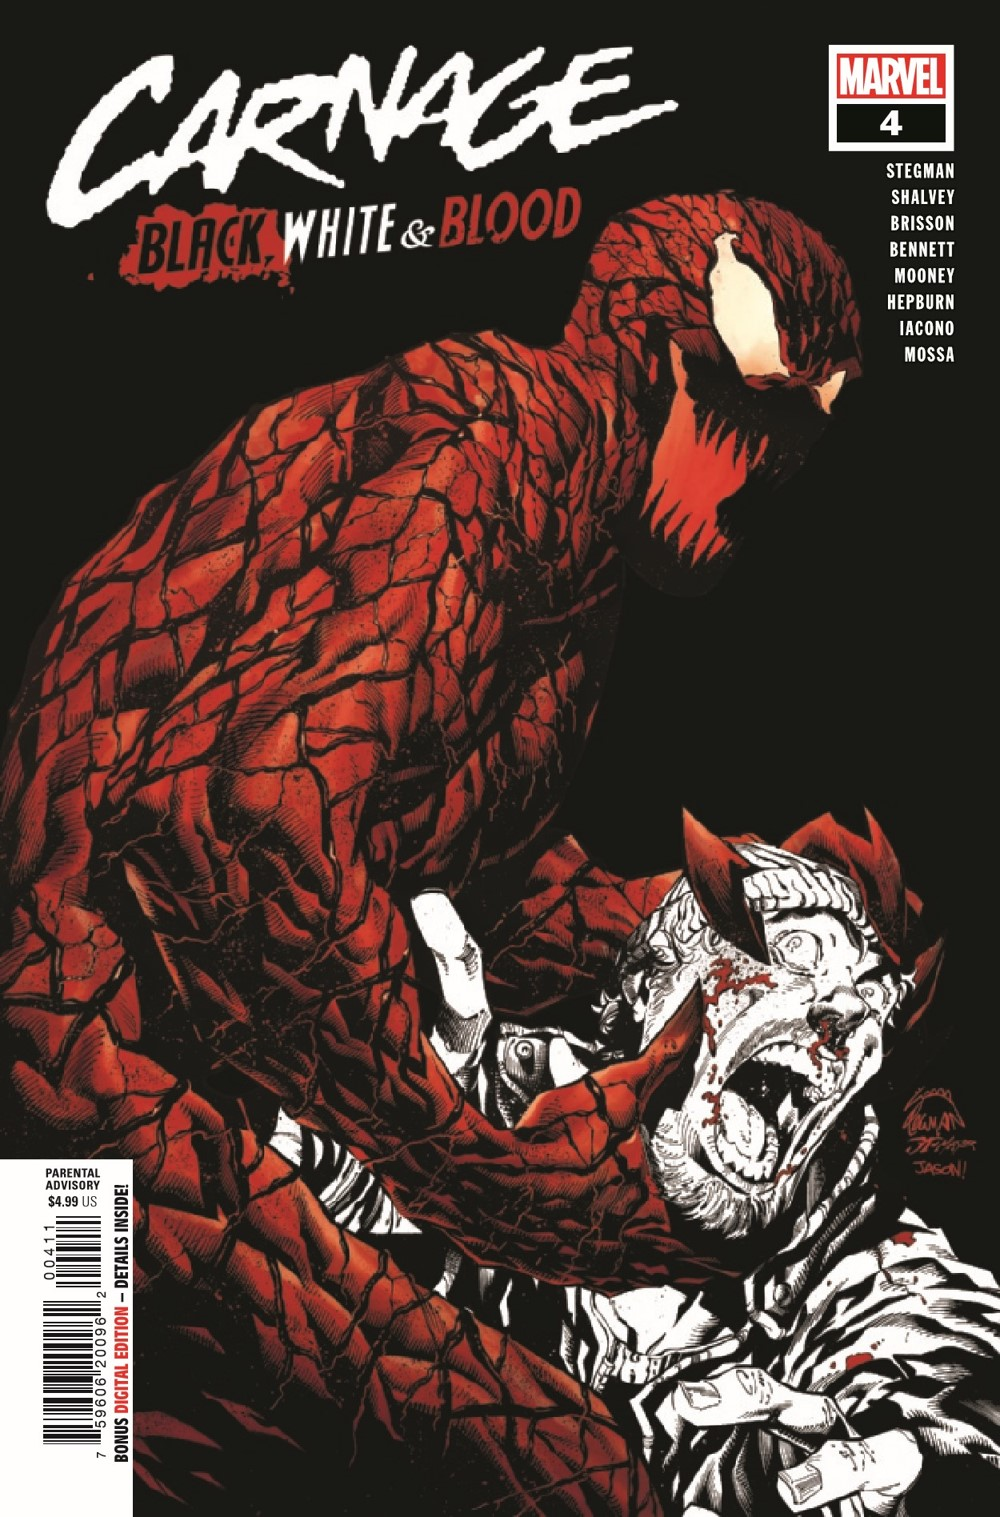 CARNBLKWHBL2021004_Preview-1 ComicList Previews: CARNAGE BLACK WHITE AND BLOOD #4 (OF 4)